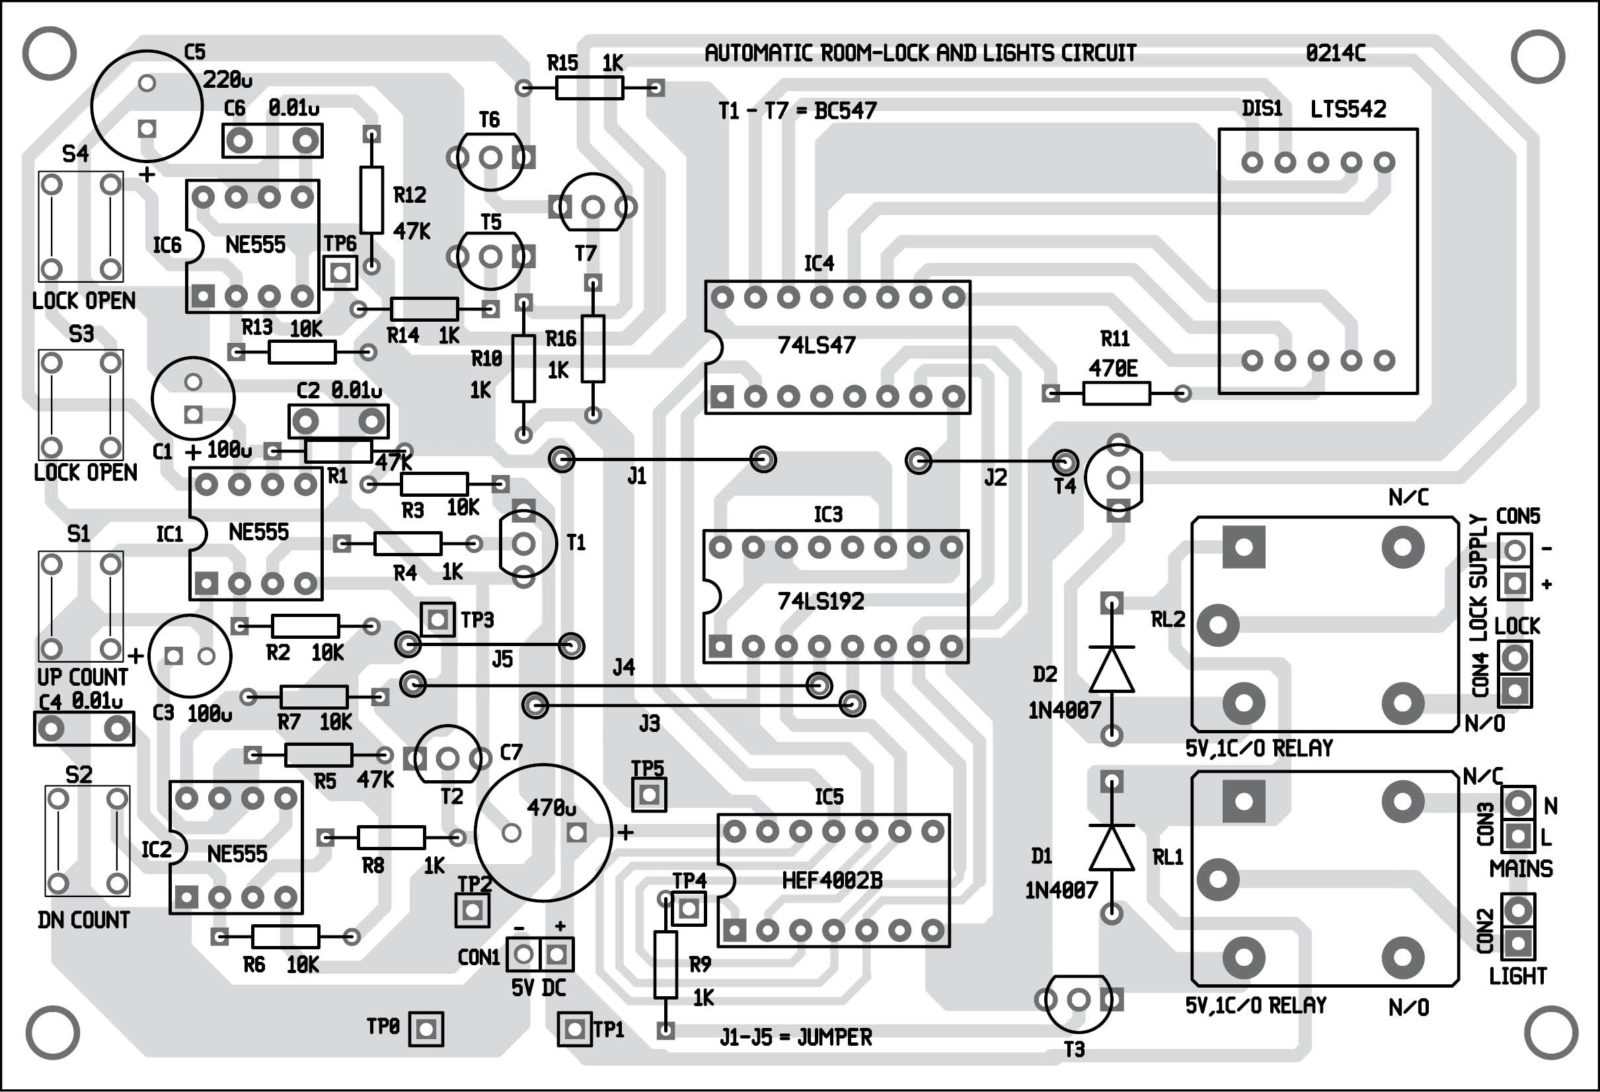 Automatic Room Lock And Lights Circuit Electronics For You Decade Counter Diagram Free Download Wiring Diagrams Fig 3 Component Layout The Pcb